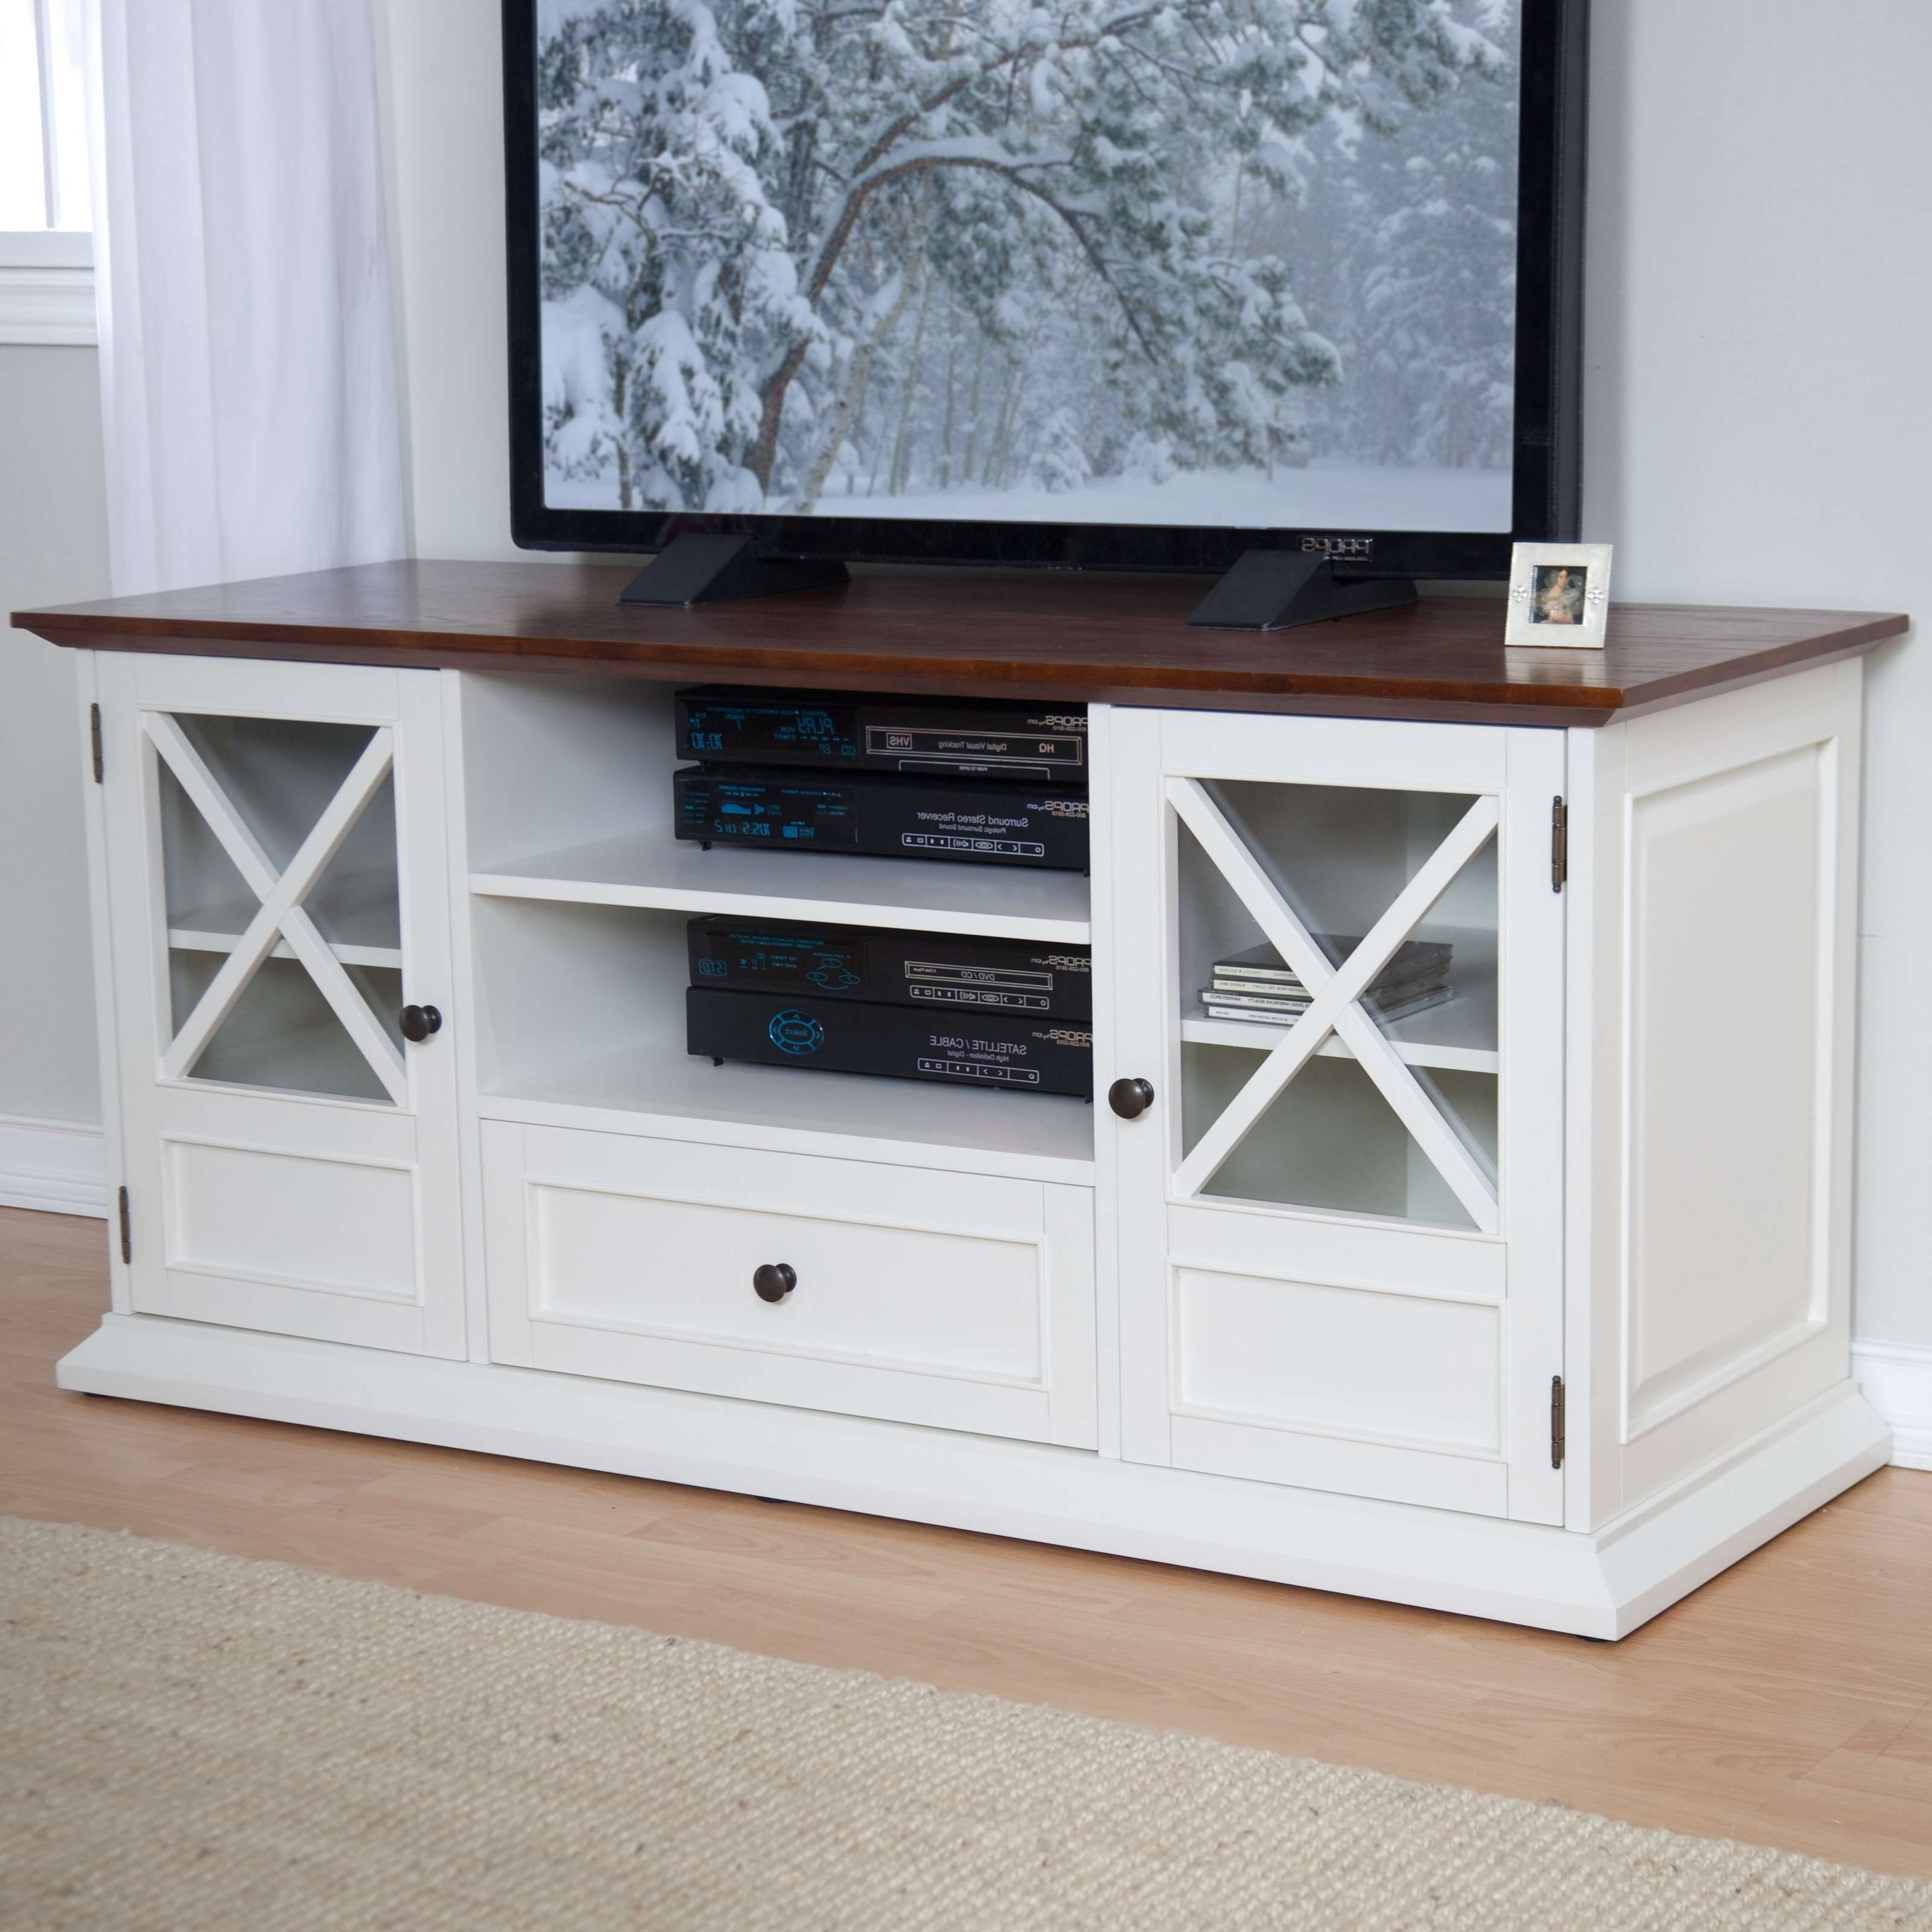 Belham Living Hampton Console Table 2 Shelf Bookcase – White/oak Throughout Grey Wood Tv Stands (View 11 of 15)